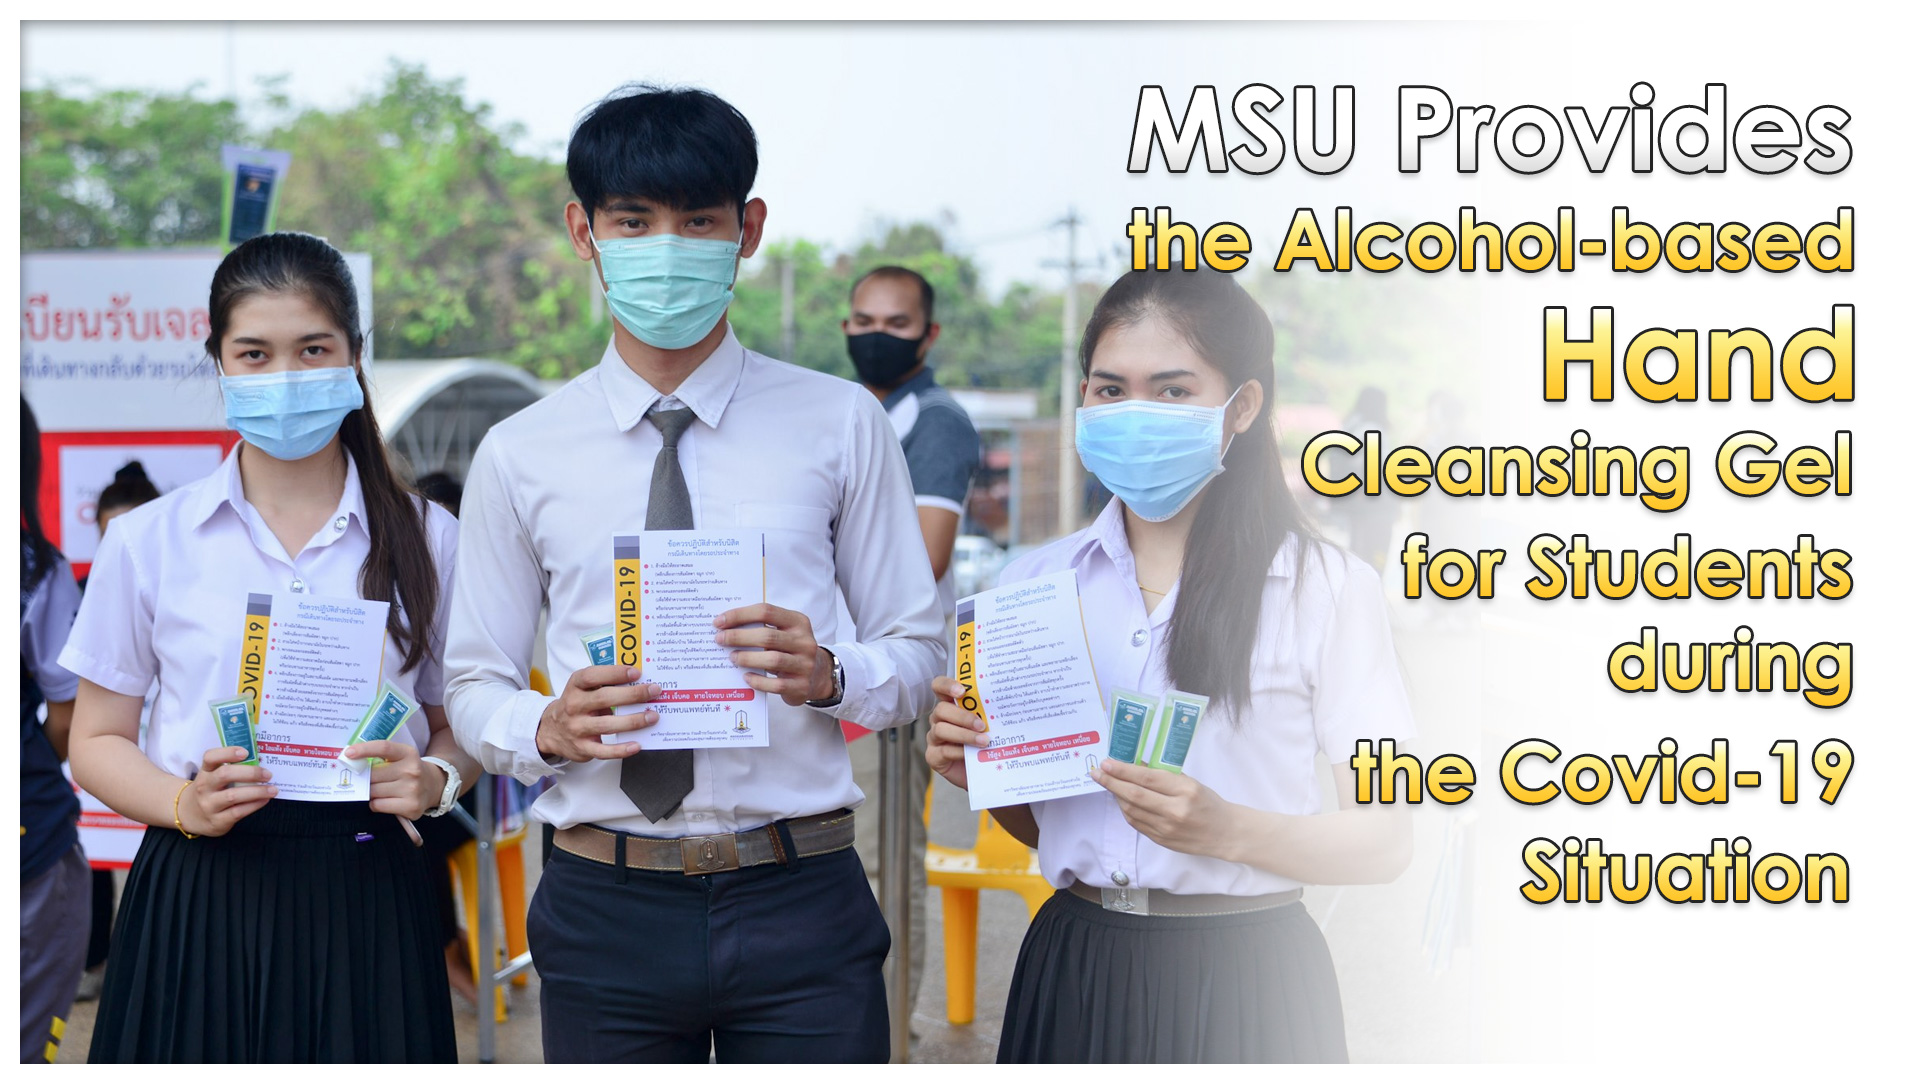 MSU Provides the Alcohol-based Hand Cleansing Gel for Students during the Covid-19 Situation.